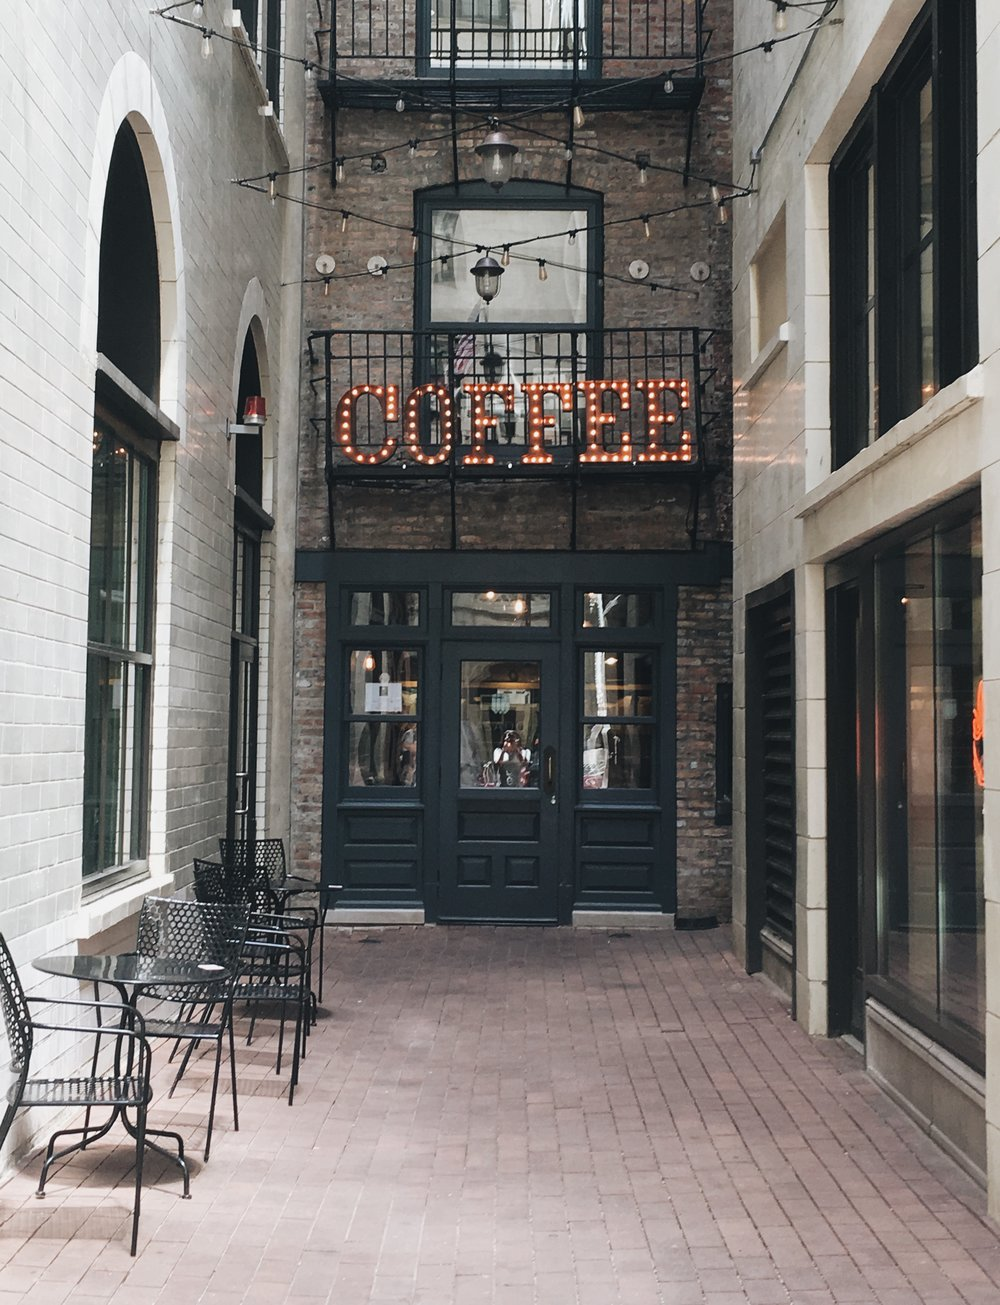 Pickwick Coffee Roasting Co. | Downtown | 22 E Jackson Blvd, Chicago, IL 60604